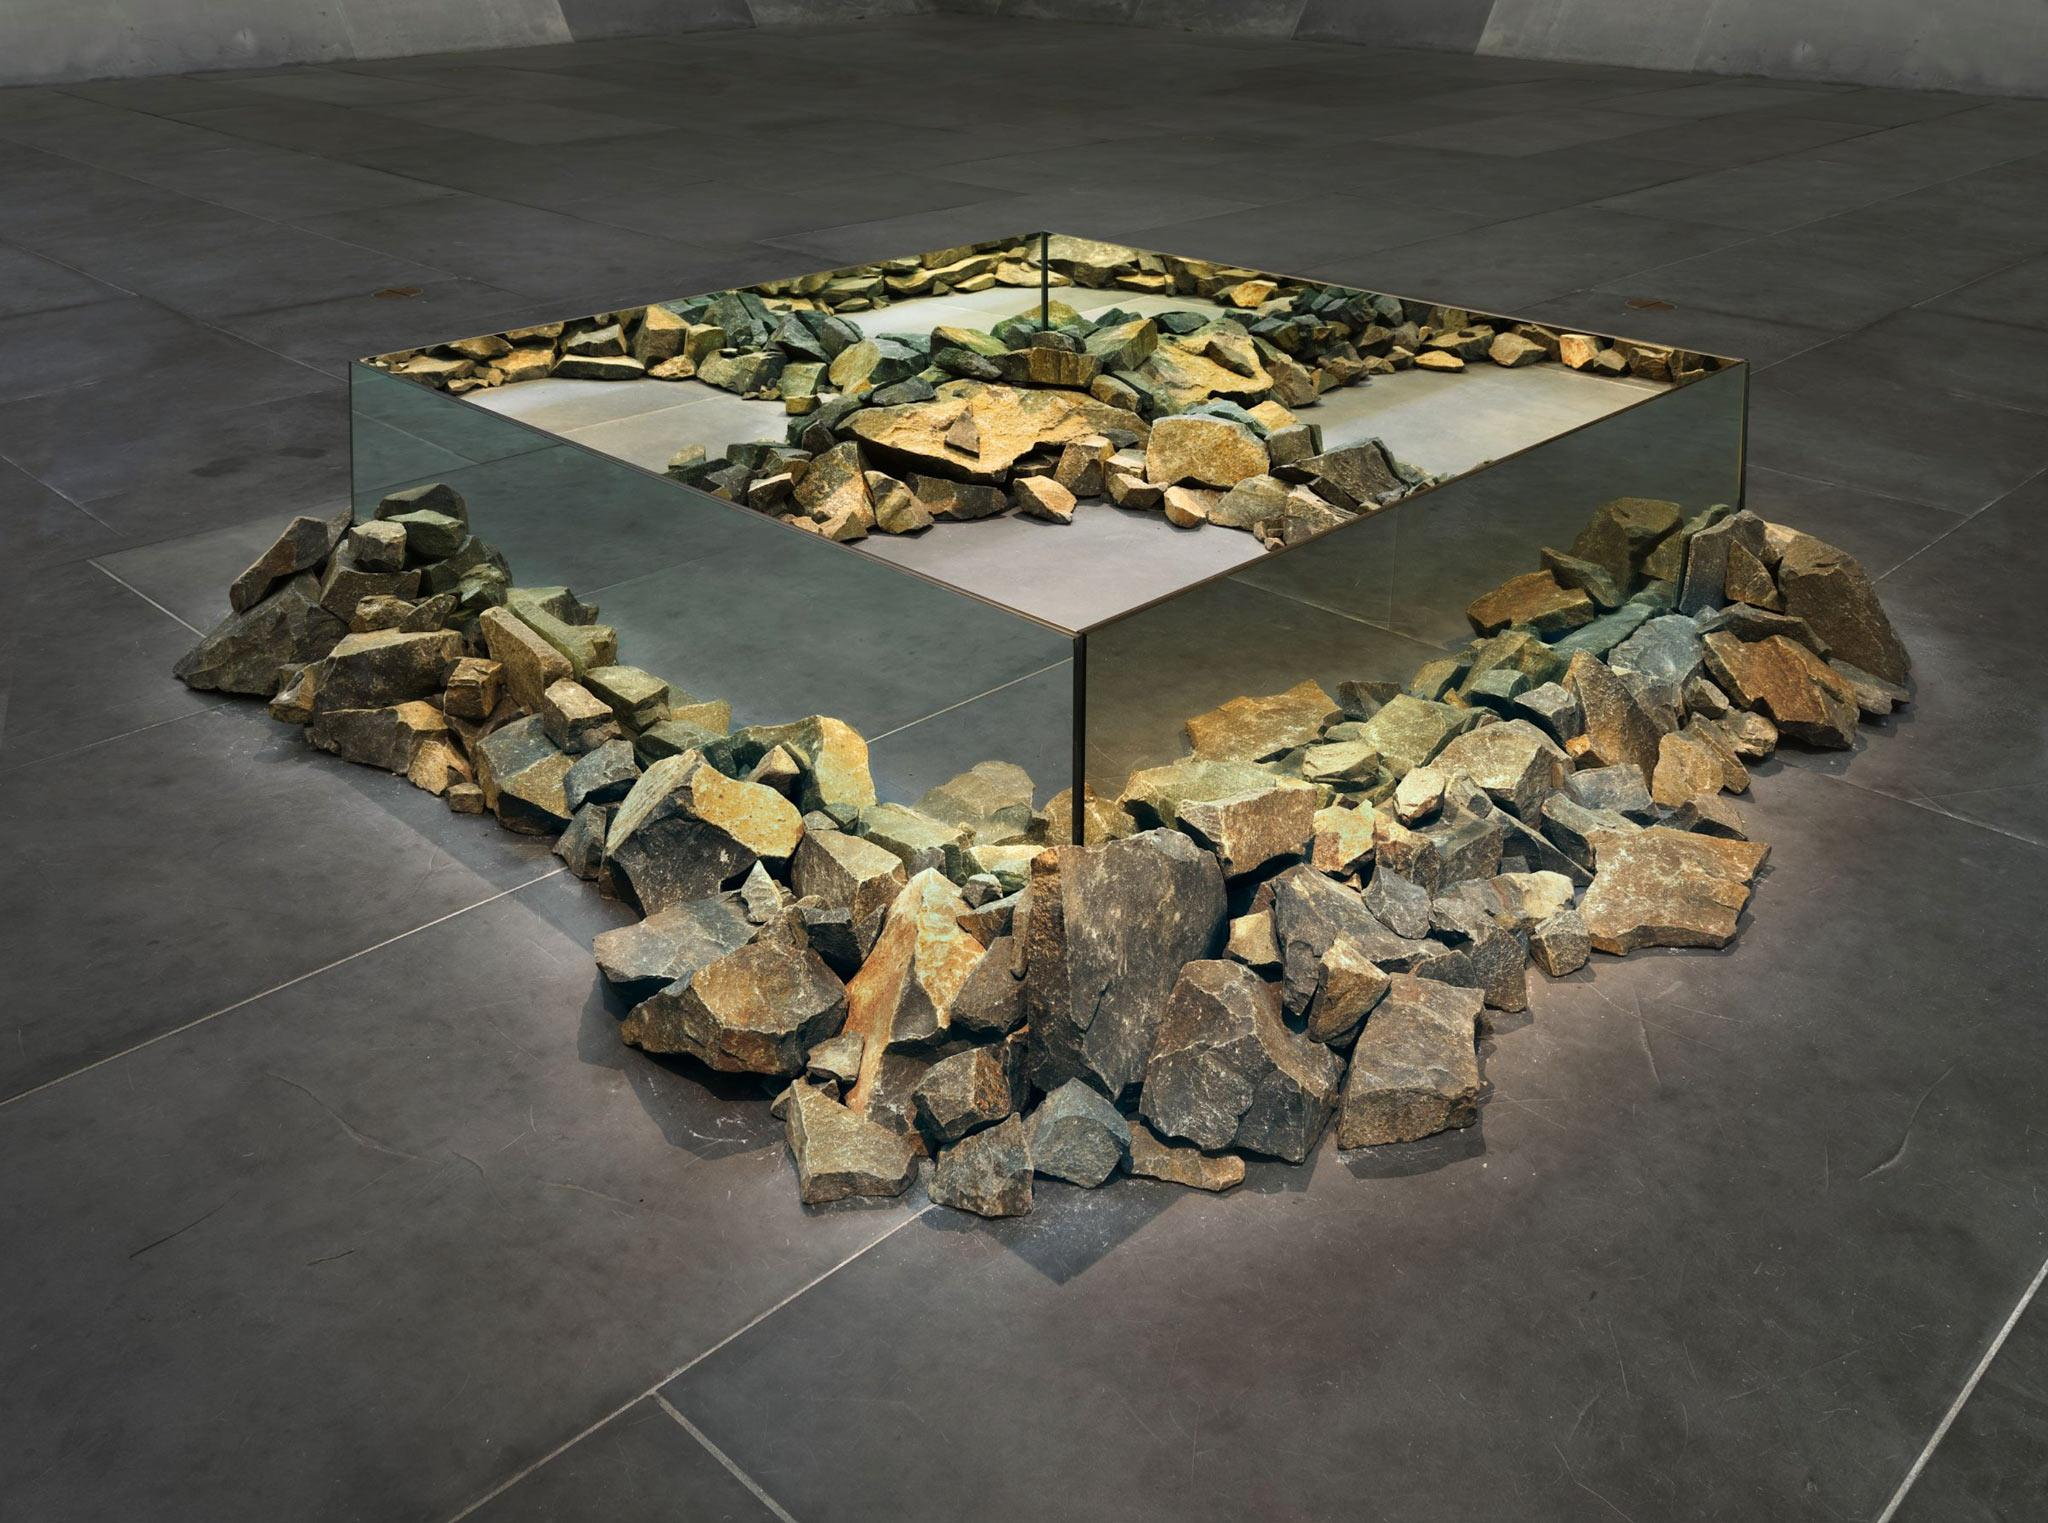 sculpture made using rocks and mirrors placed on the ground in a square shape